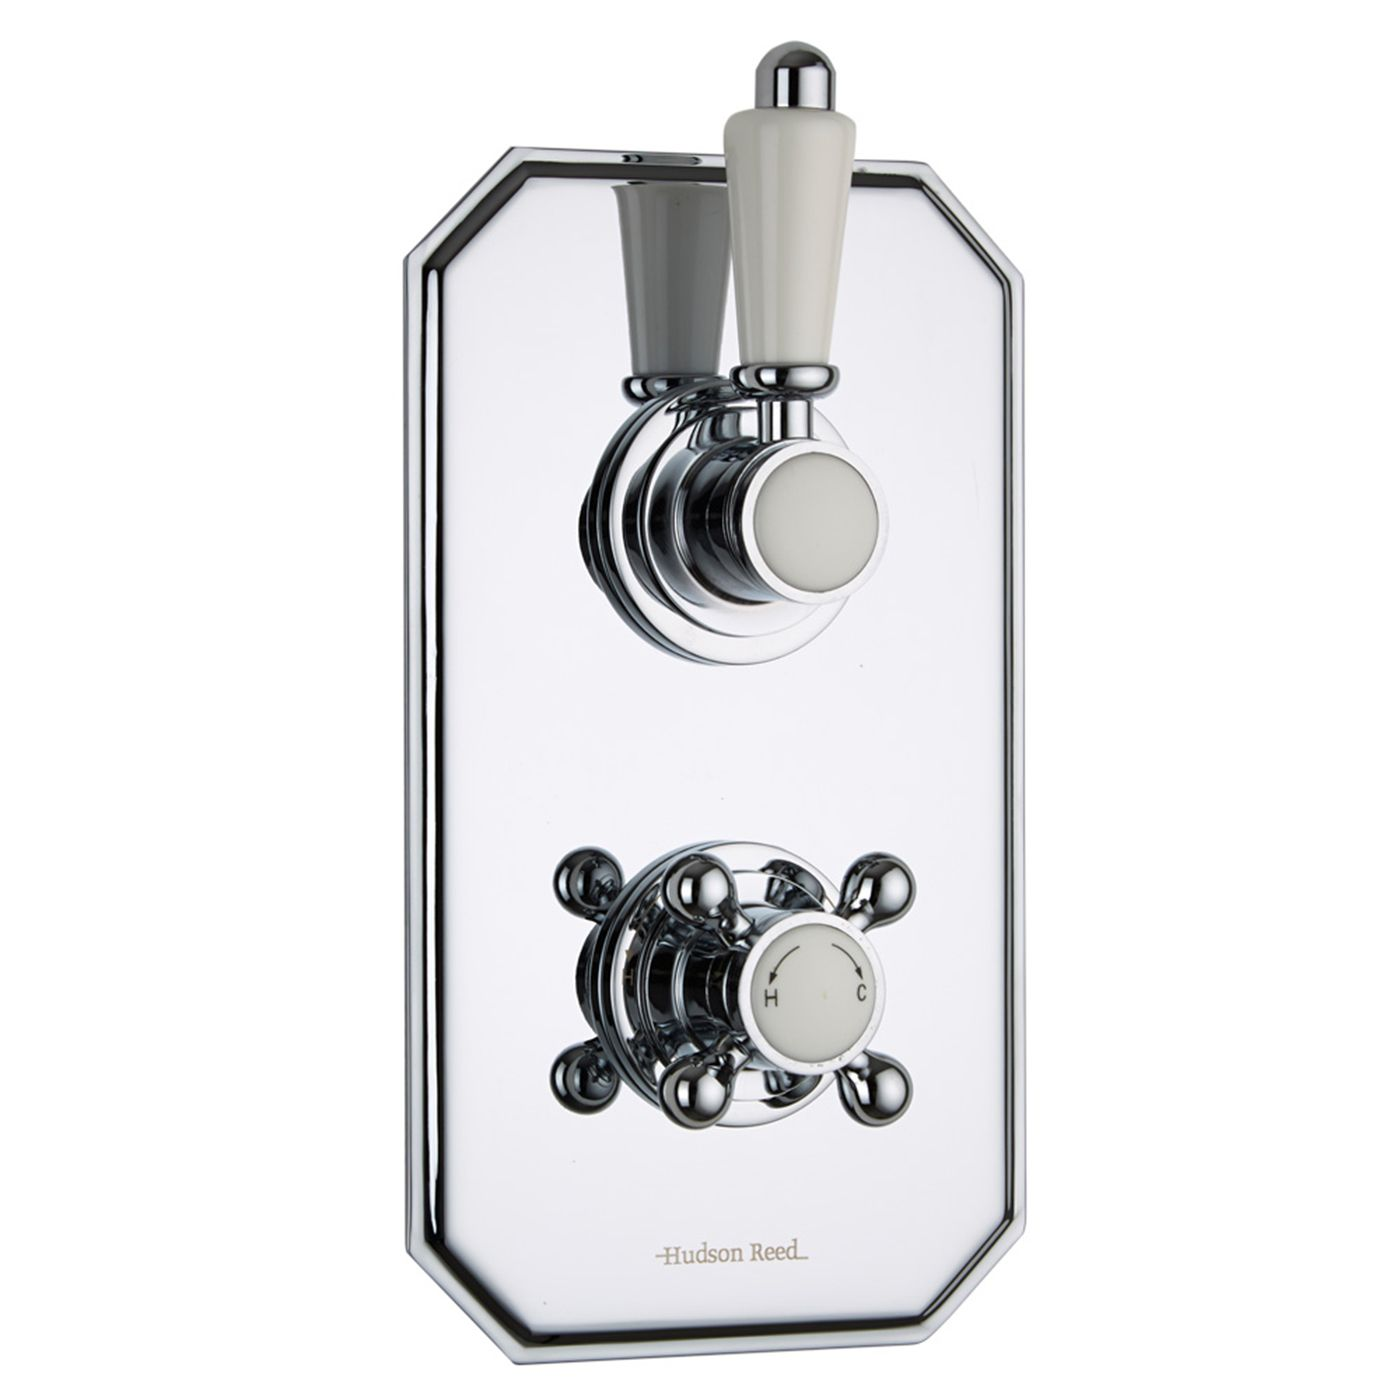 Traditional Concealed 1 Outlet Twin Thermostatic Shower Valve (Traditional Plate)